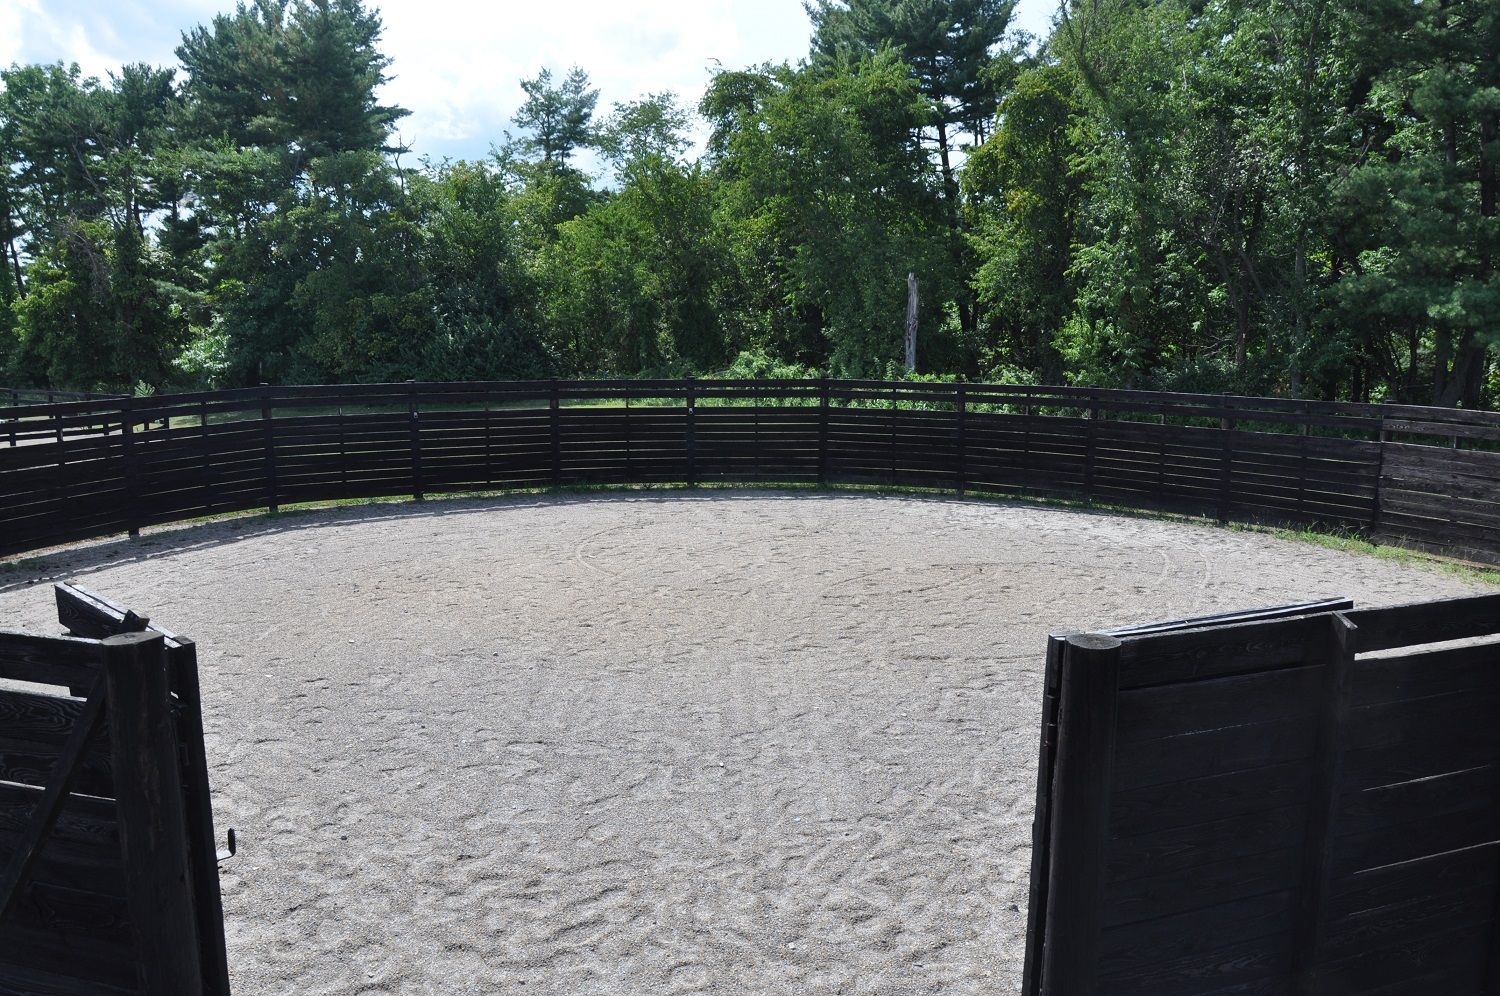 Get back to basics in our 60 foot Round Pen